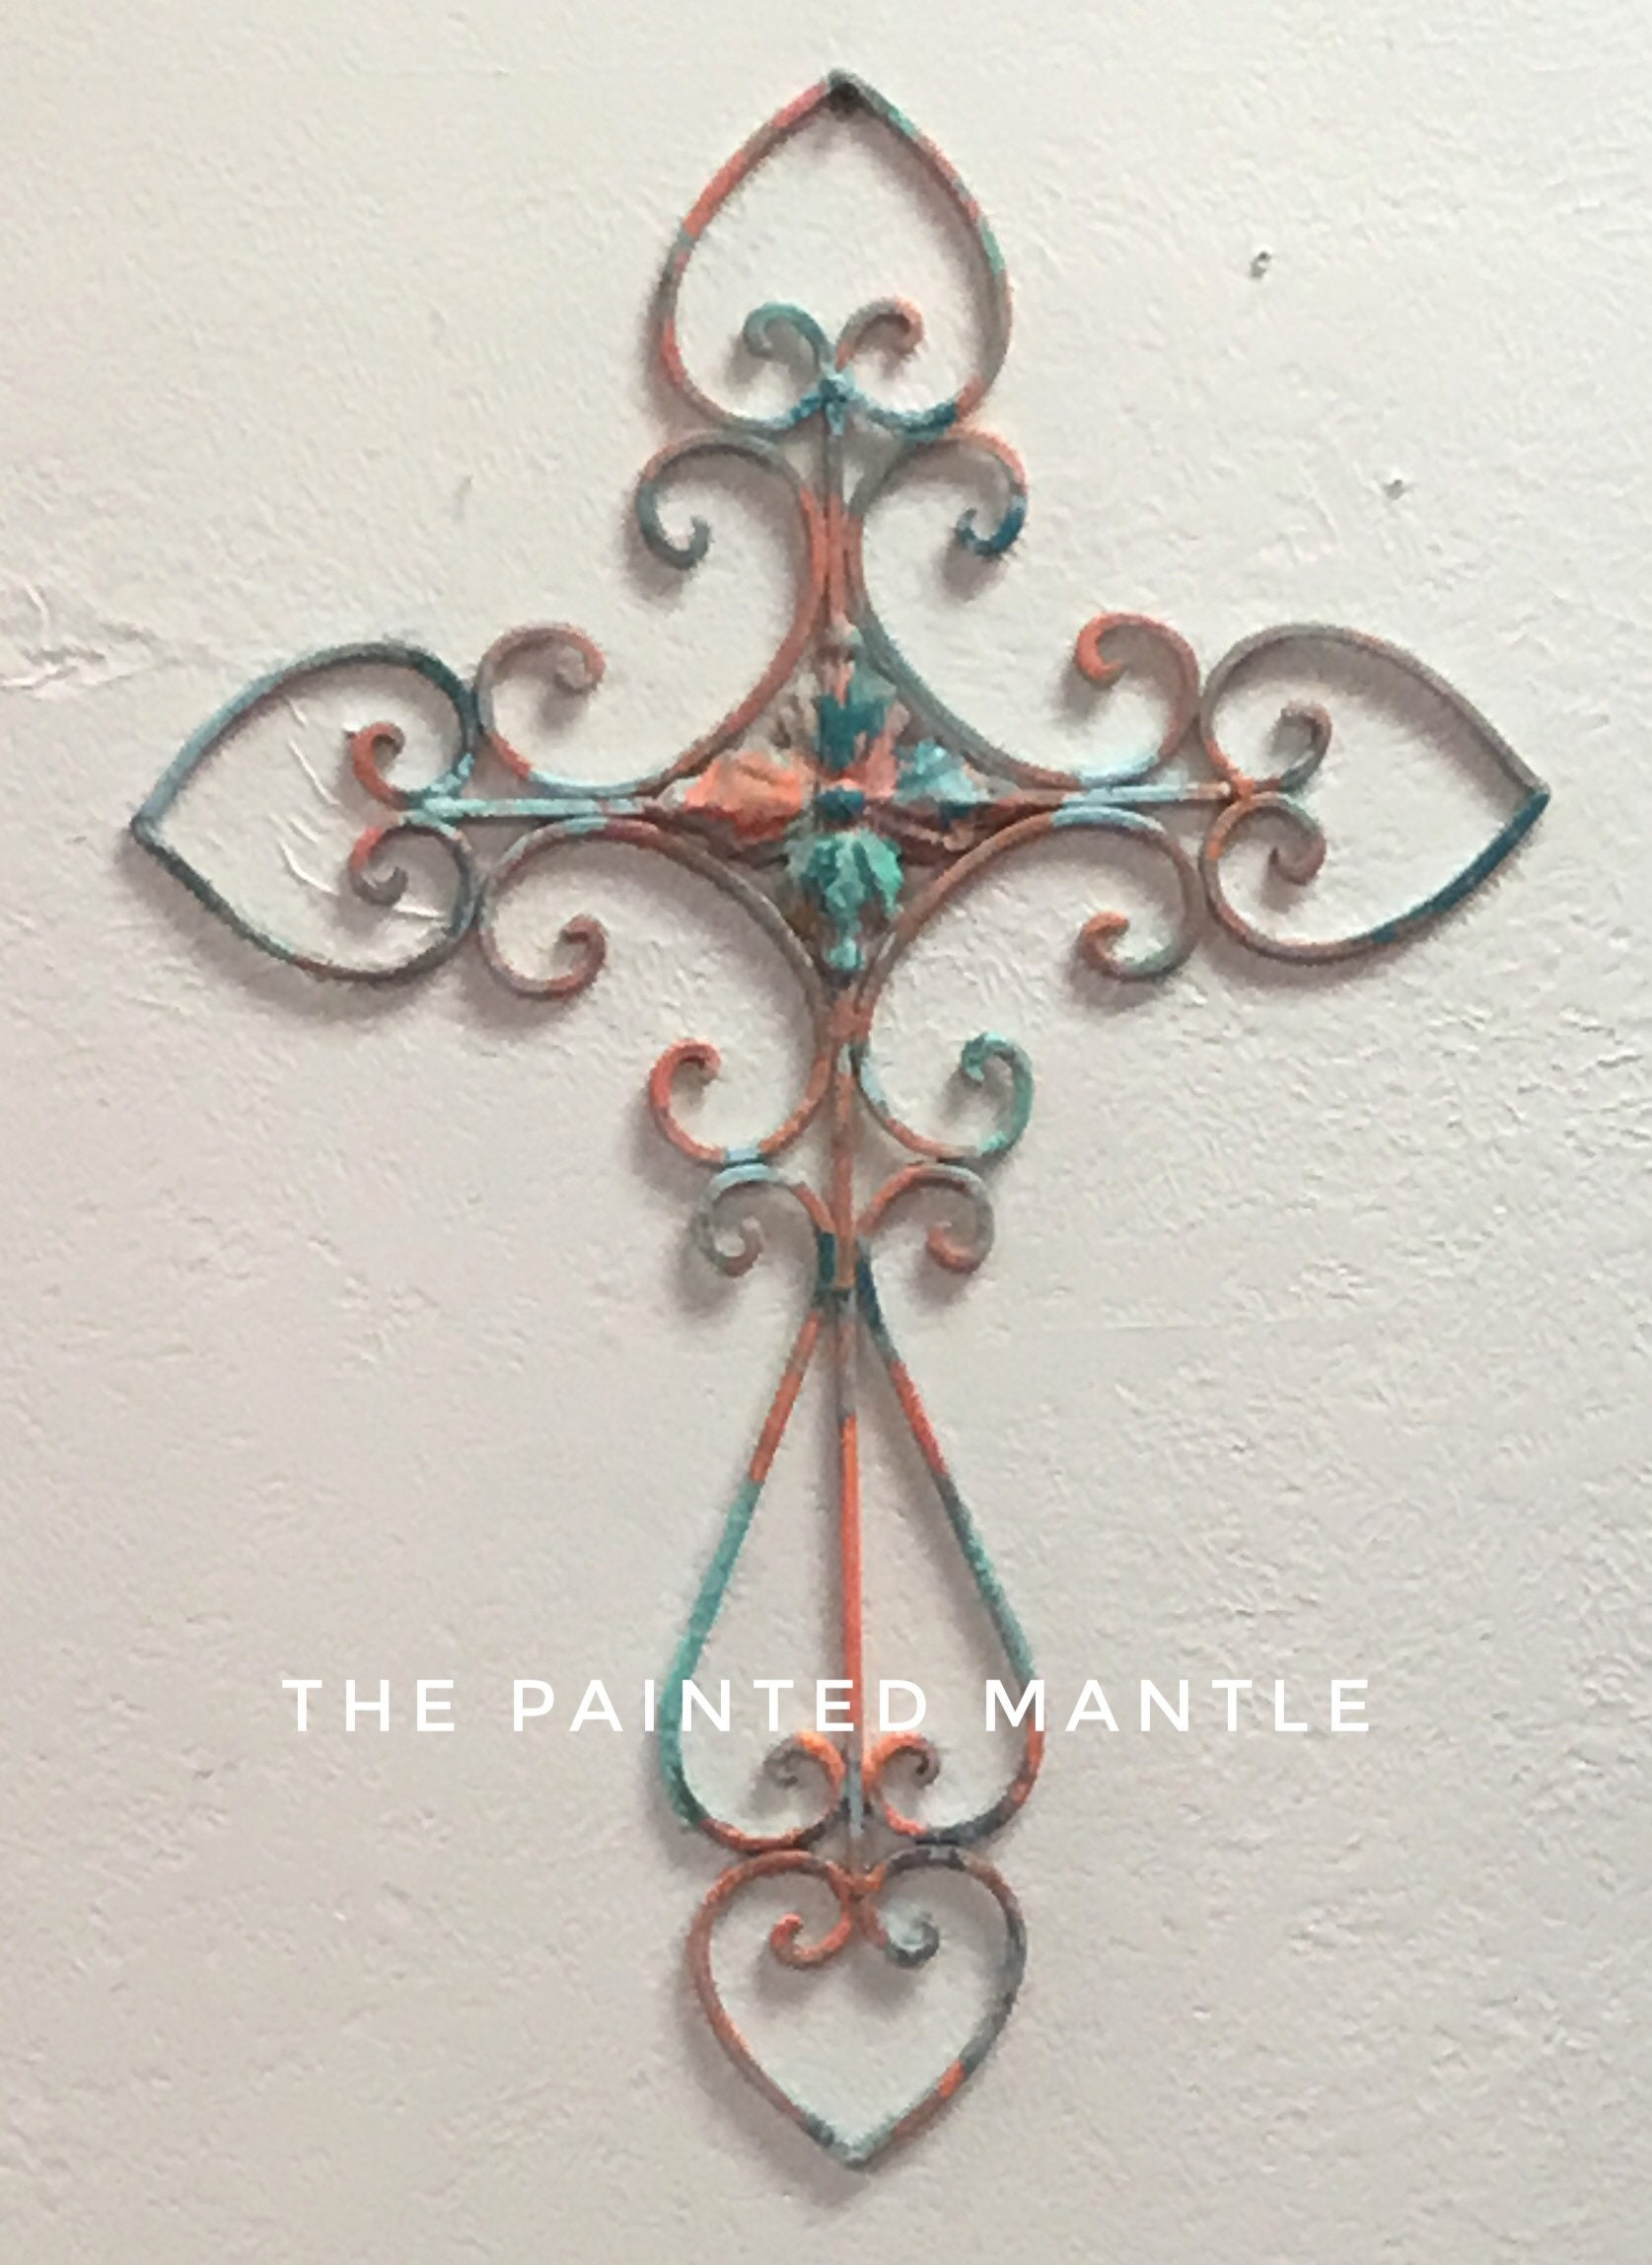 Decorative Cross / Wall Cross / Home Decor / Wall Hanging / Coral / Aqua /  Turquoise / Faith / Metal Wall Art / Metal Cross / Gallery Wall